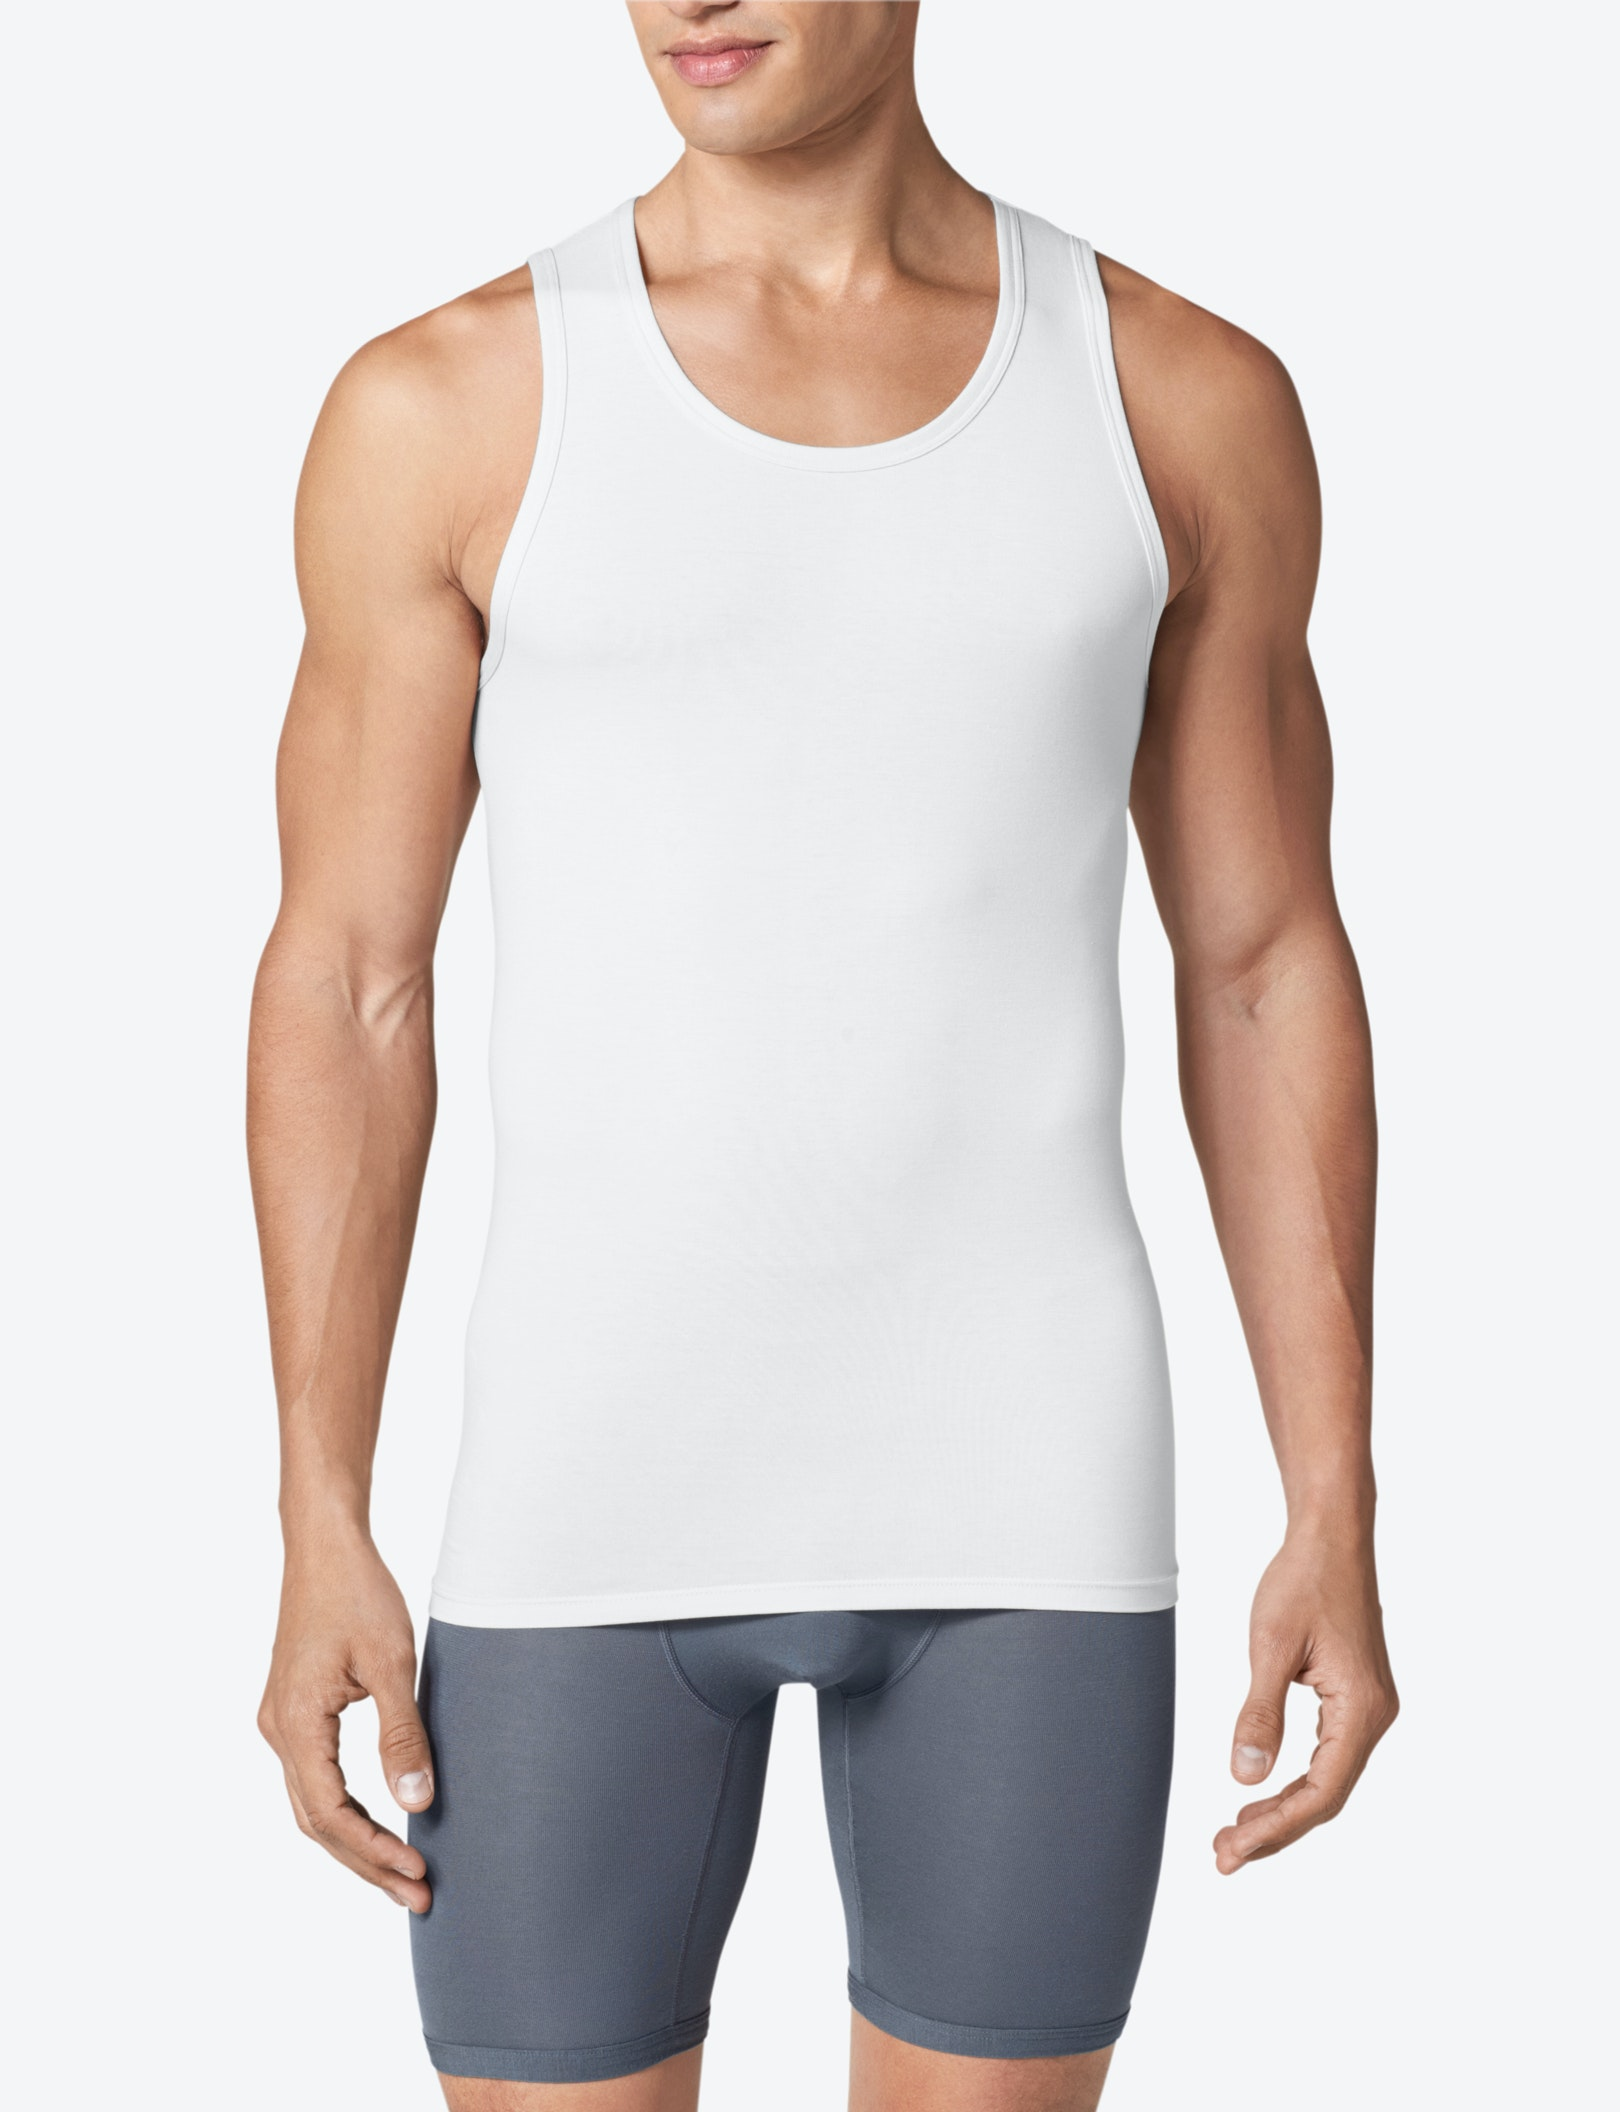 Cool Cotton Tank Stay Tucked Undershirt Cool Undershirts